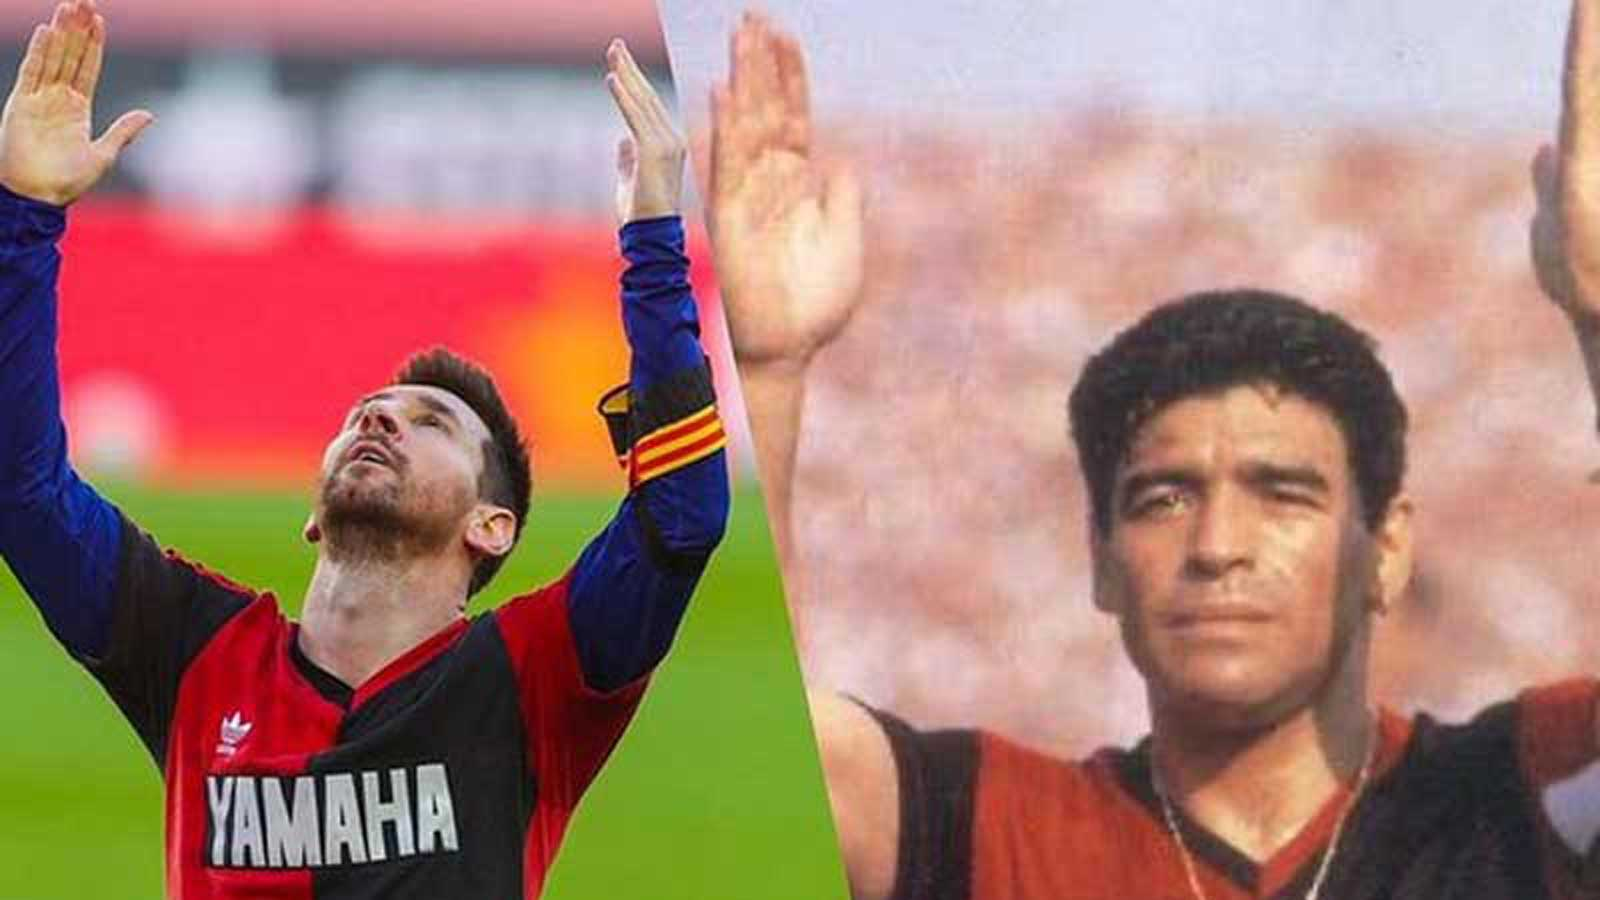 tribute-to-maradona-lionel-messi-fined-600-euros